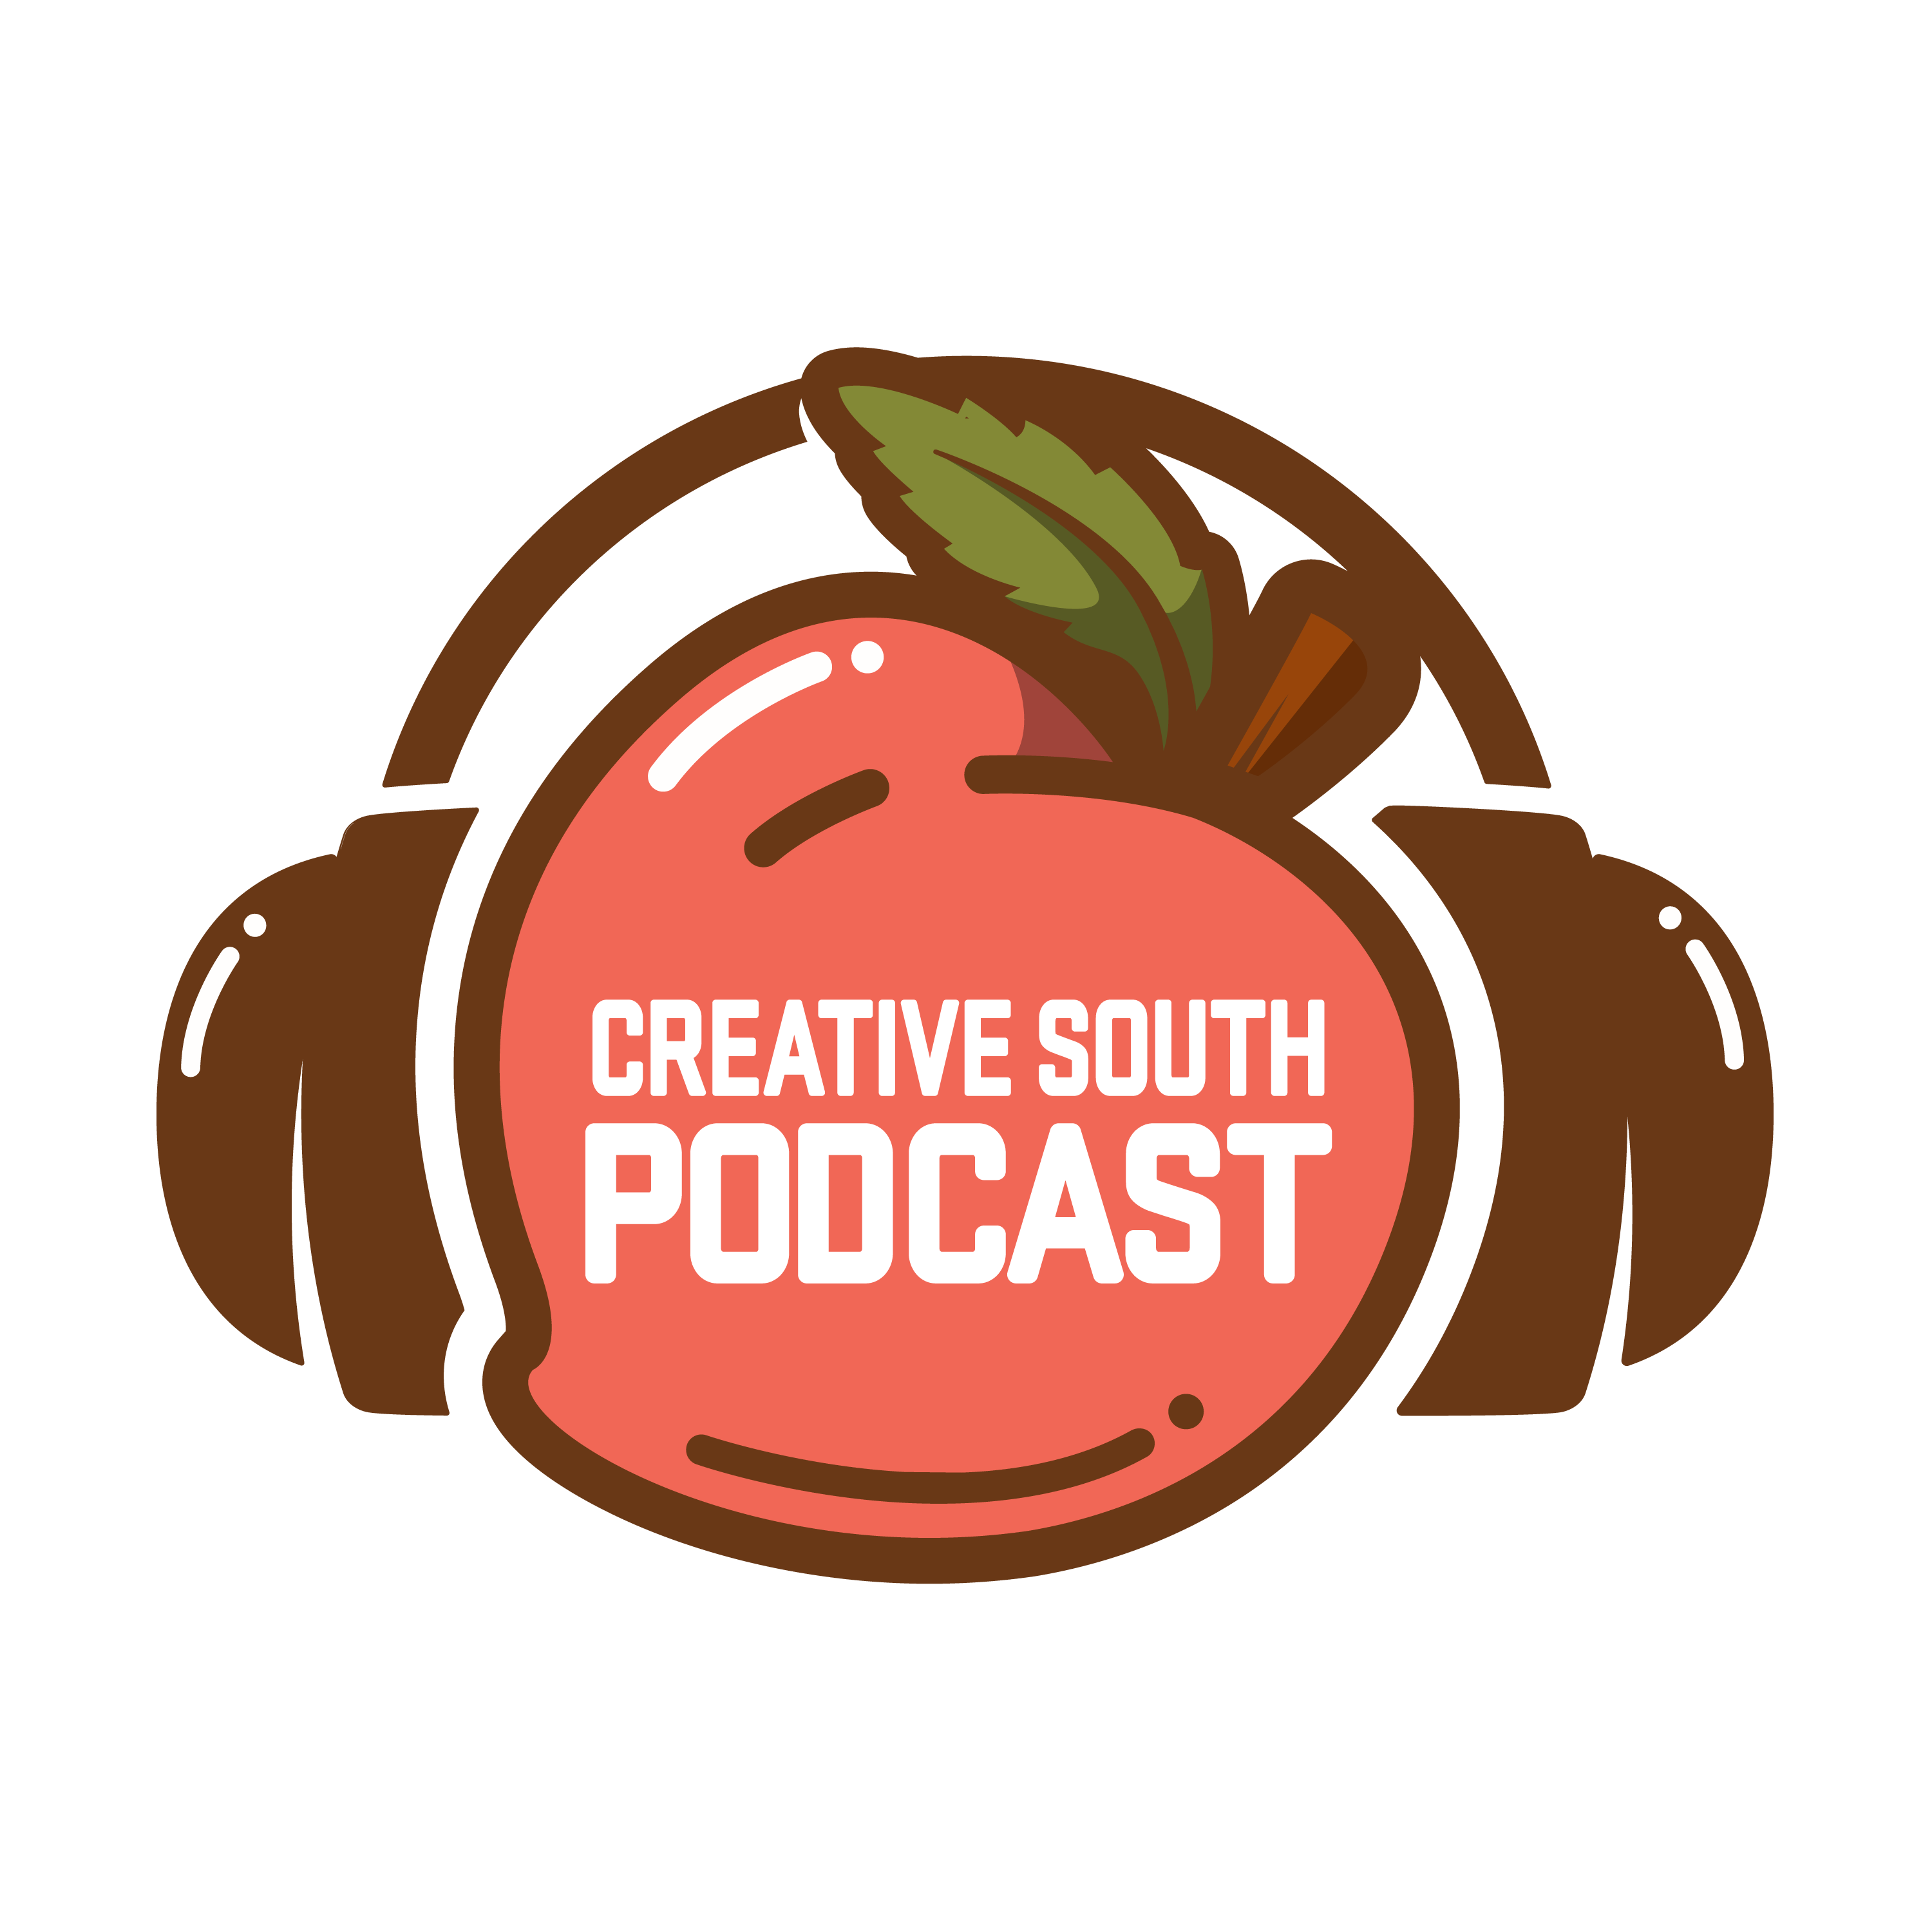 Creative south podcast all. Psychology clipart whiz